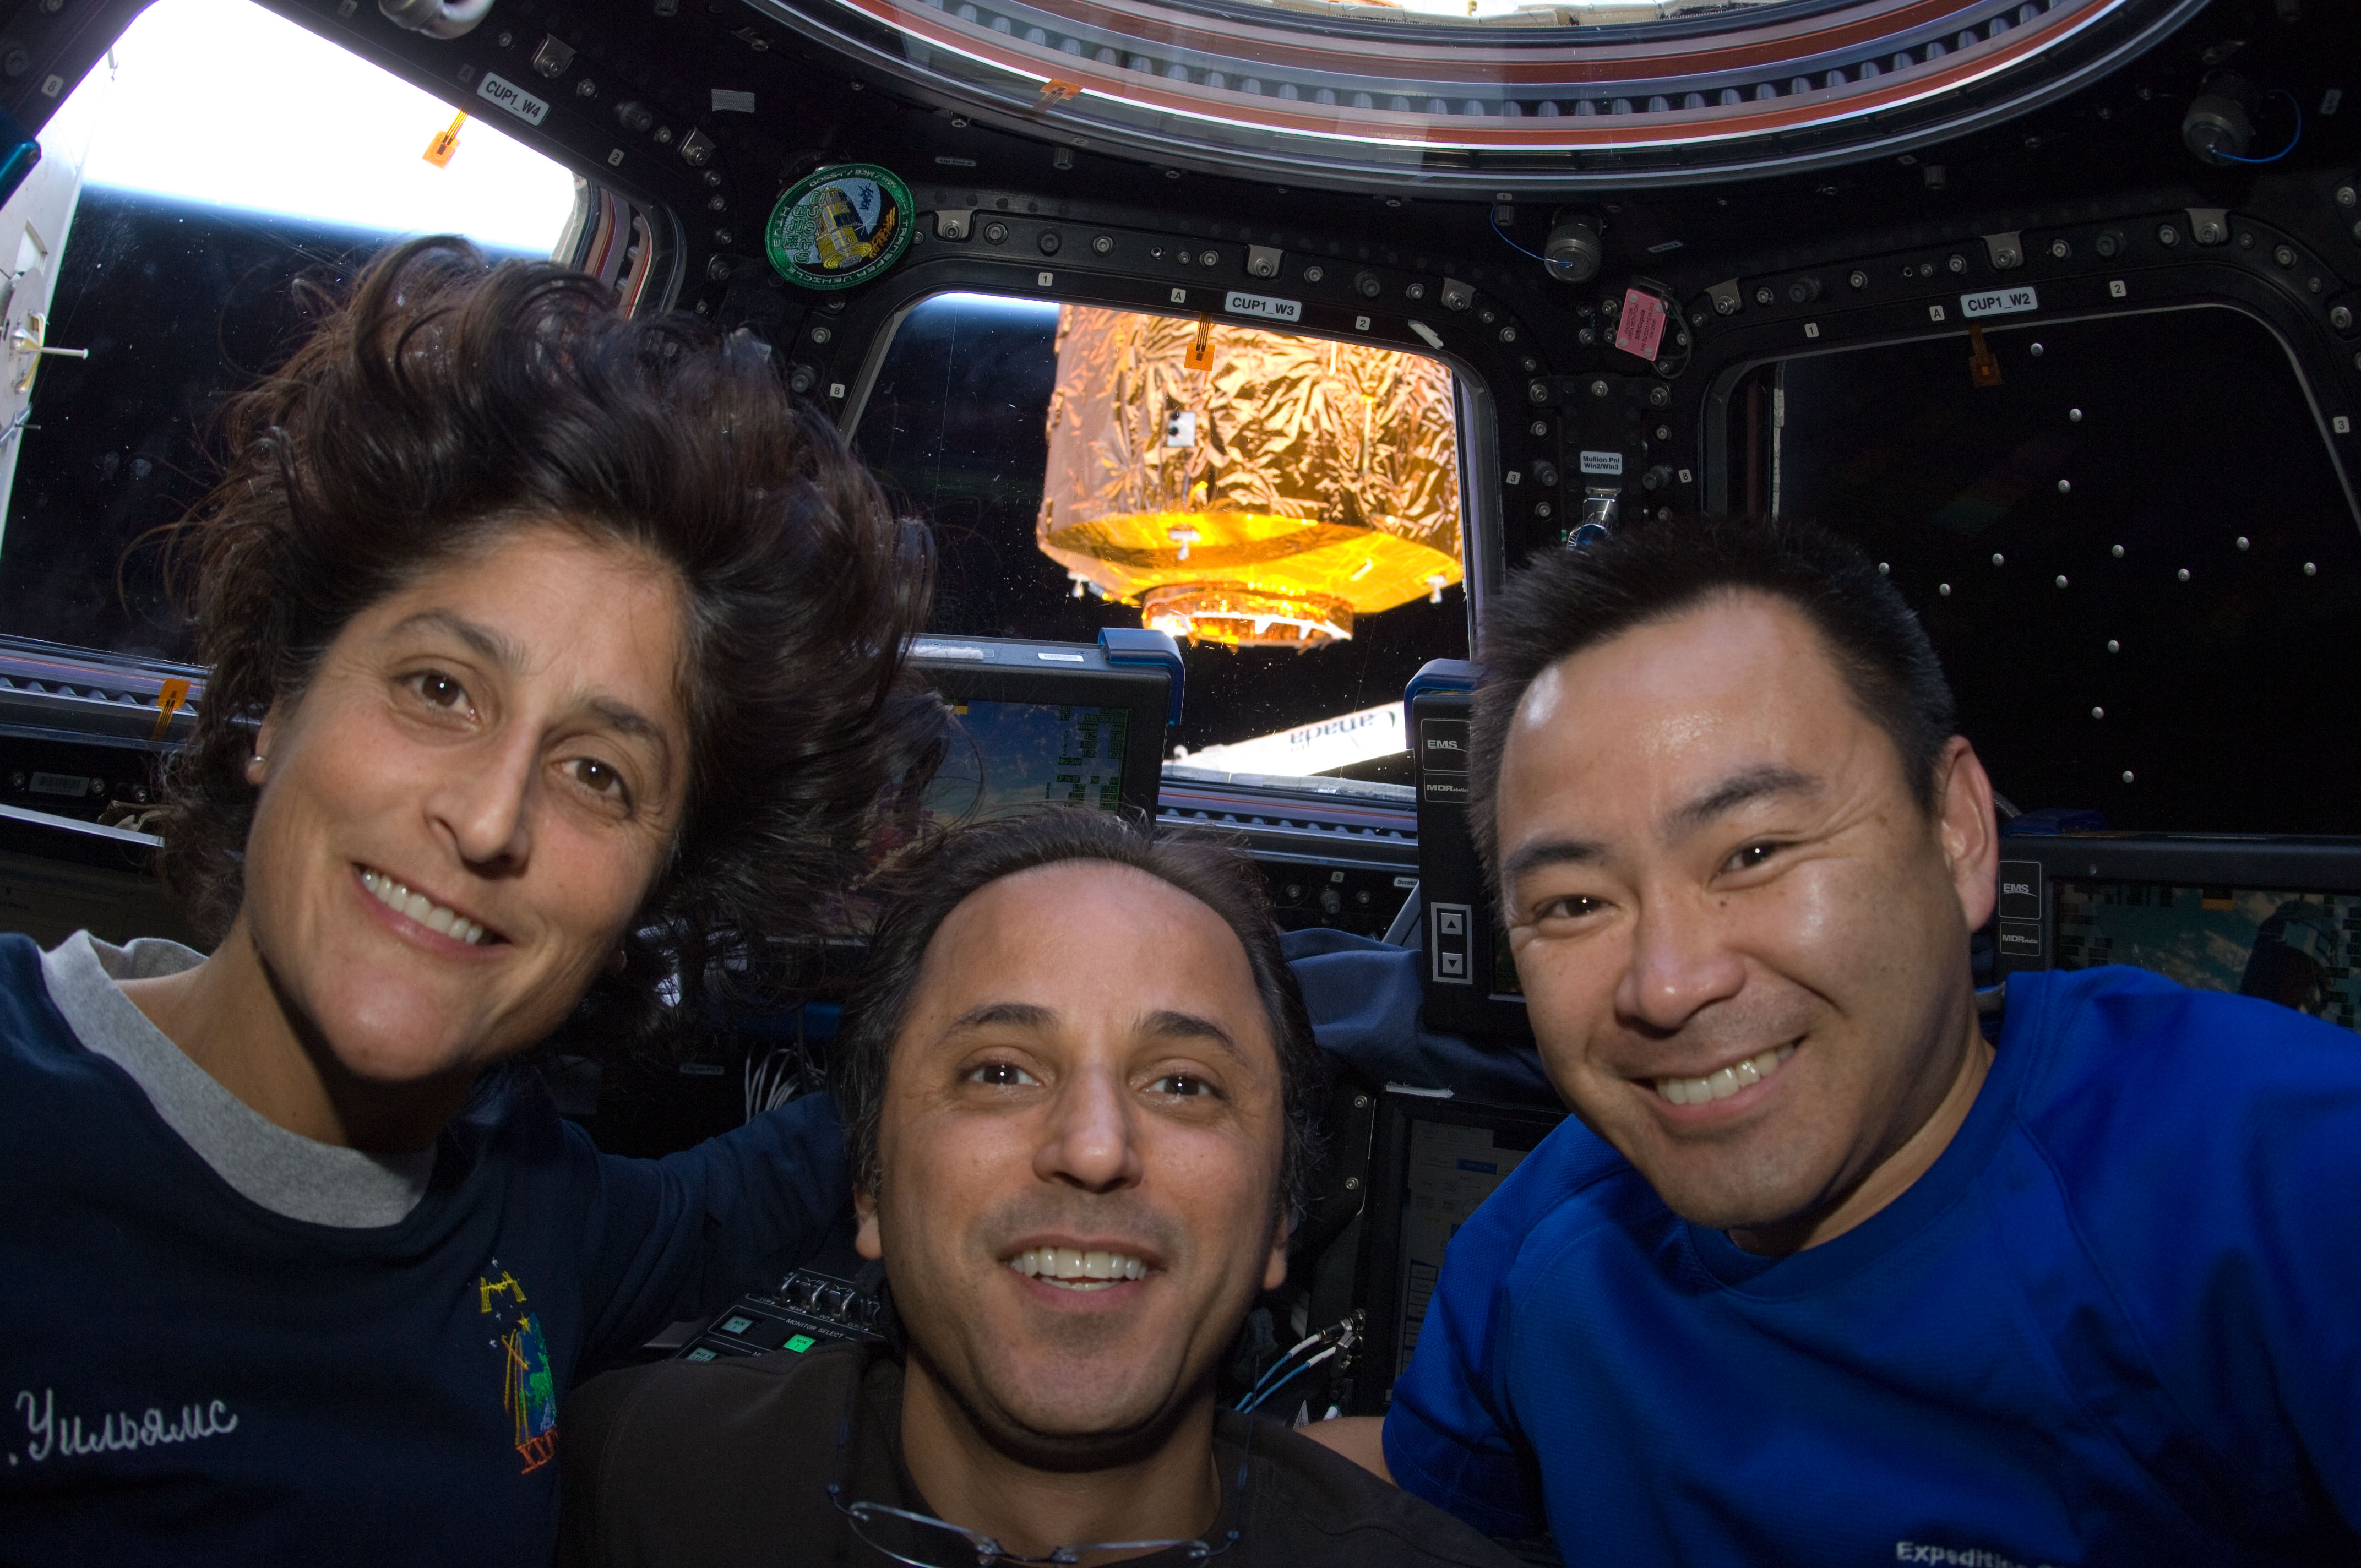 Astronauts in the Cupola